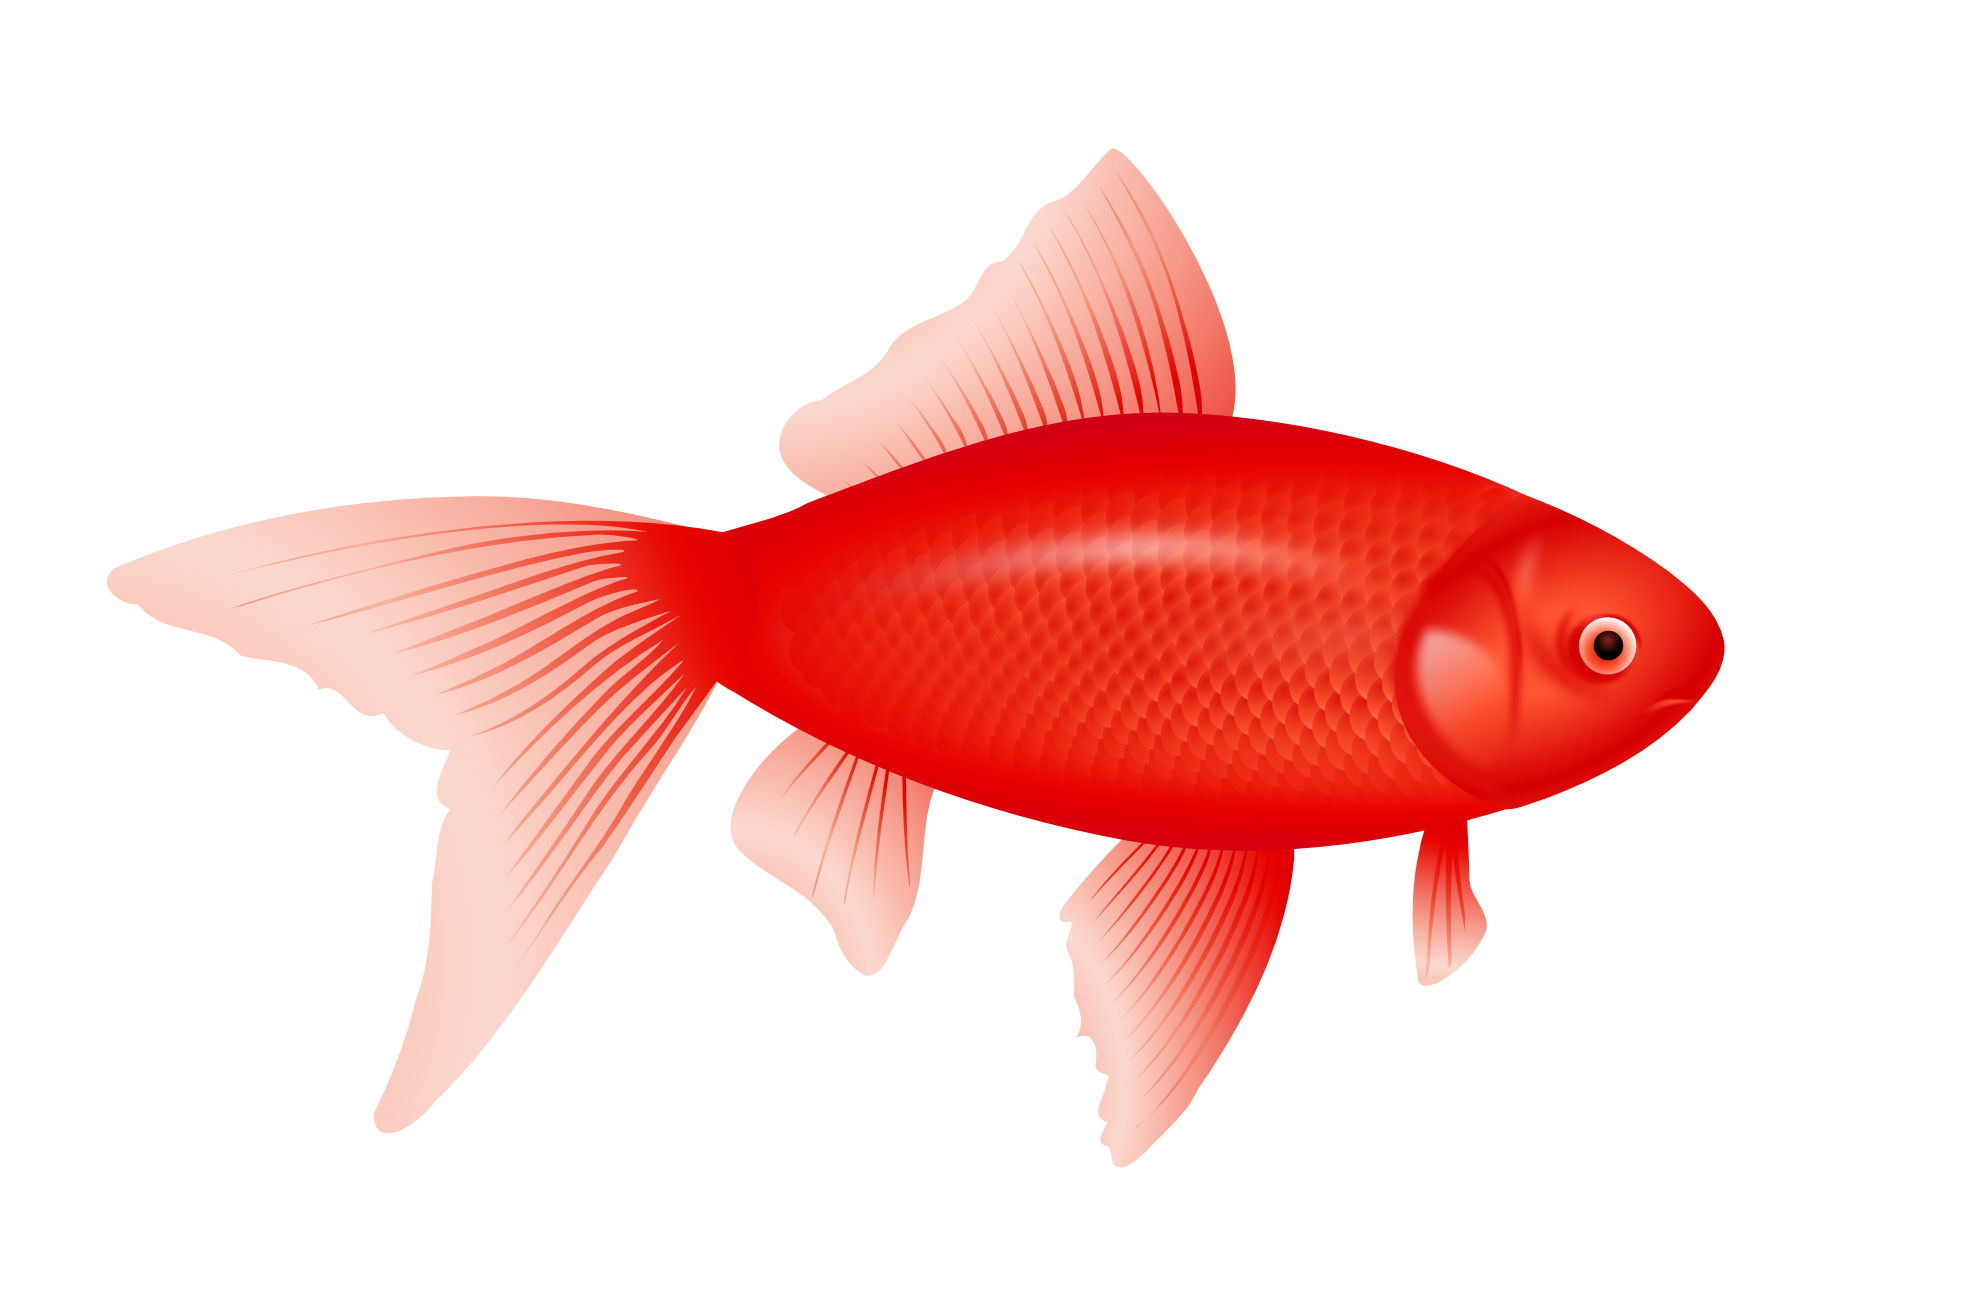 Fish clipart no background png black and white stock Fish Six | Isolated Stock Photo by noBACKS.com png black and white stock